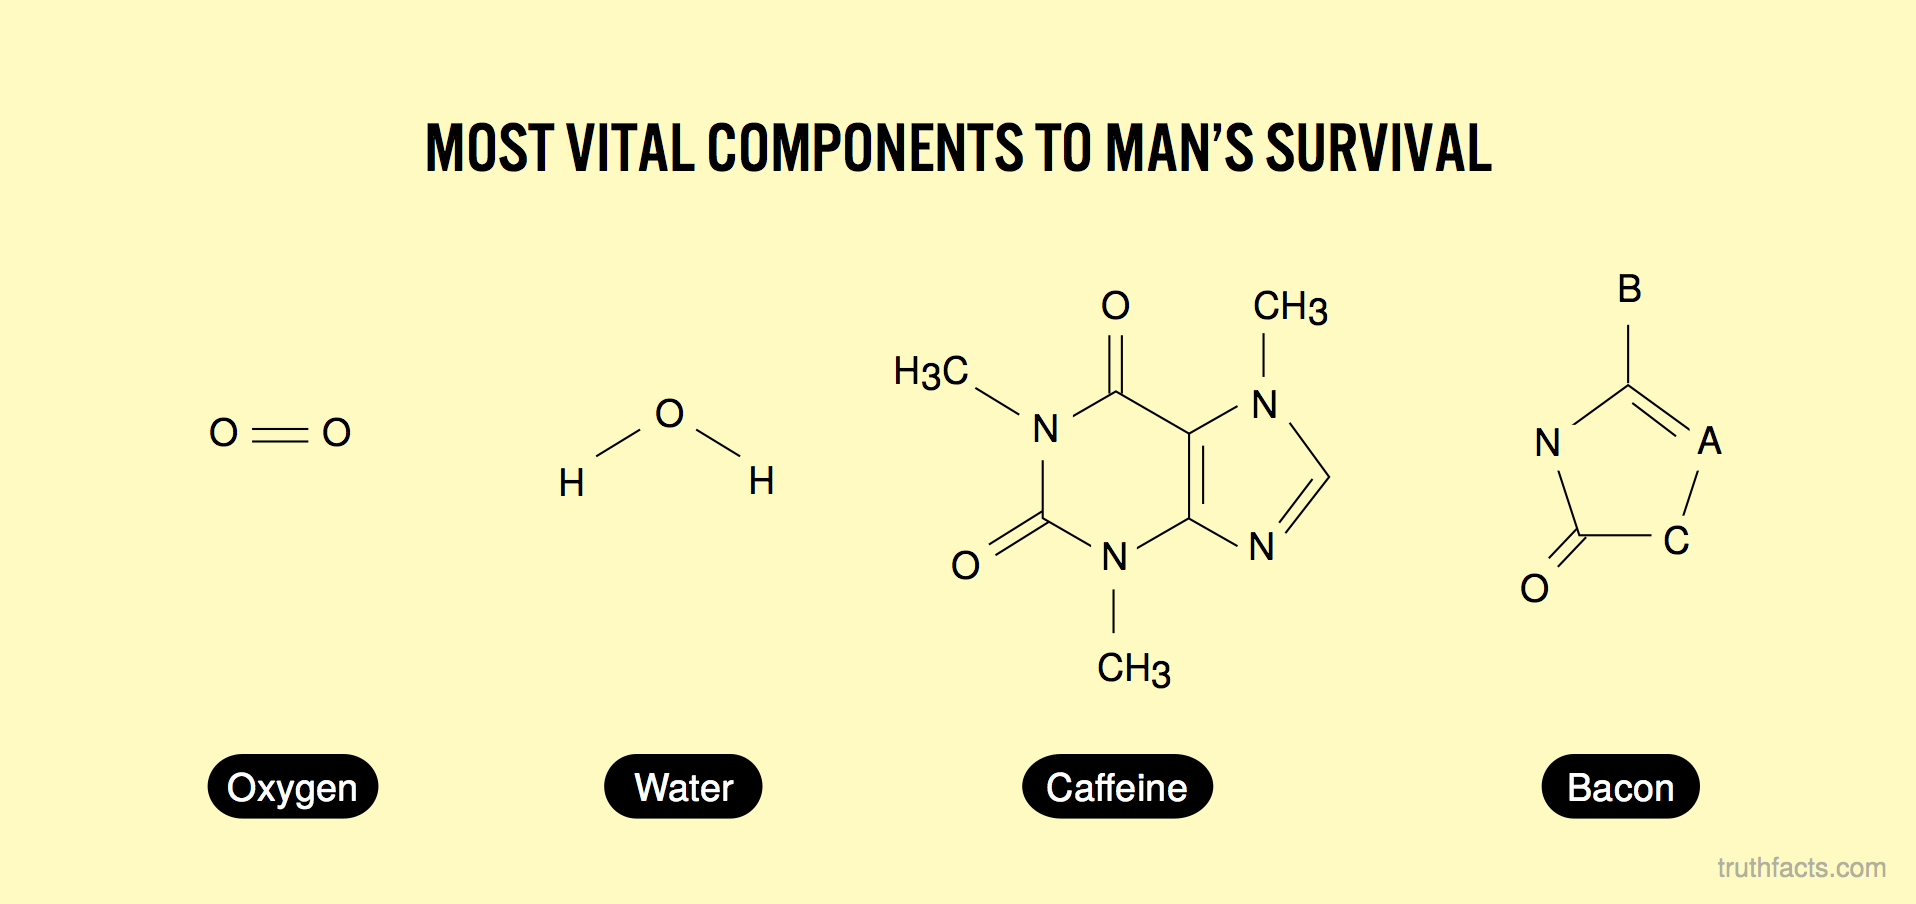 Most vital components to man's survival